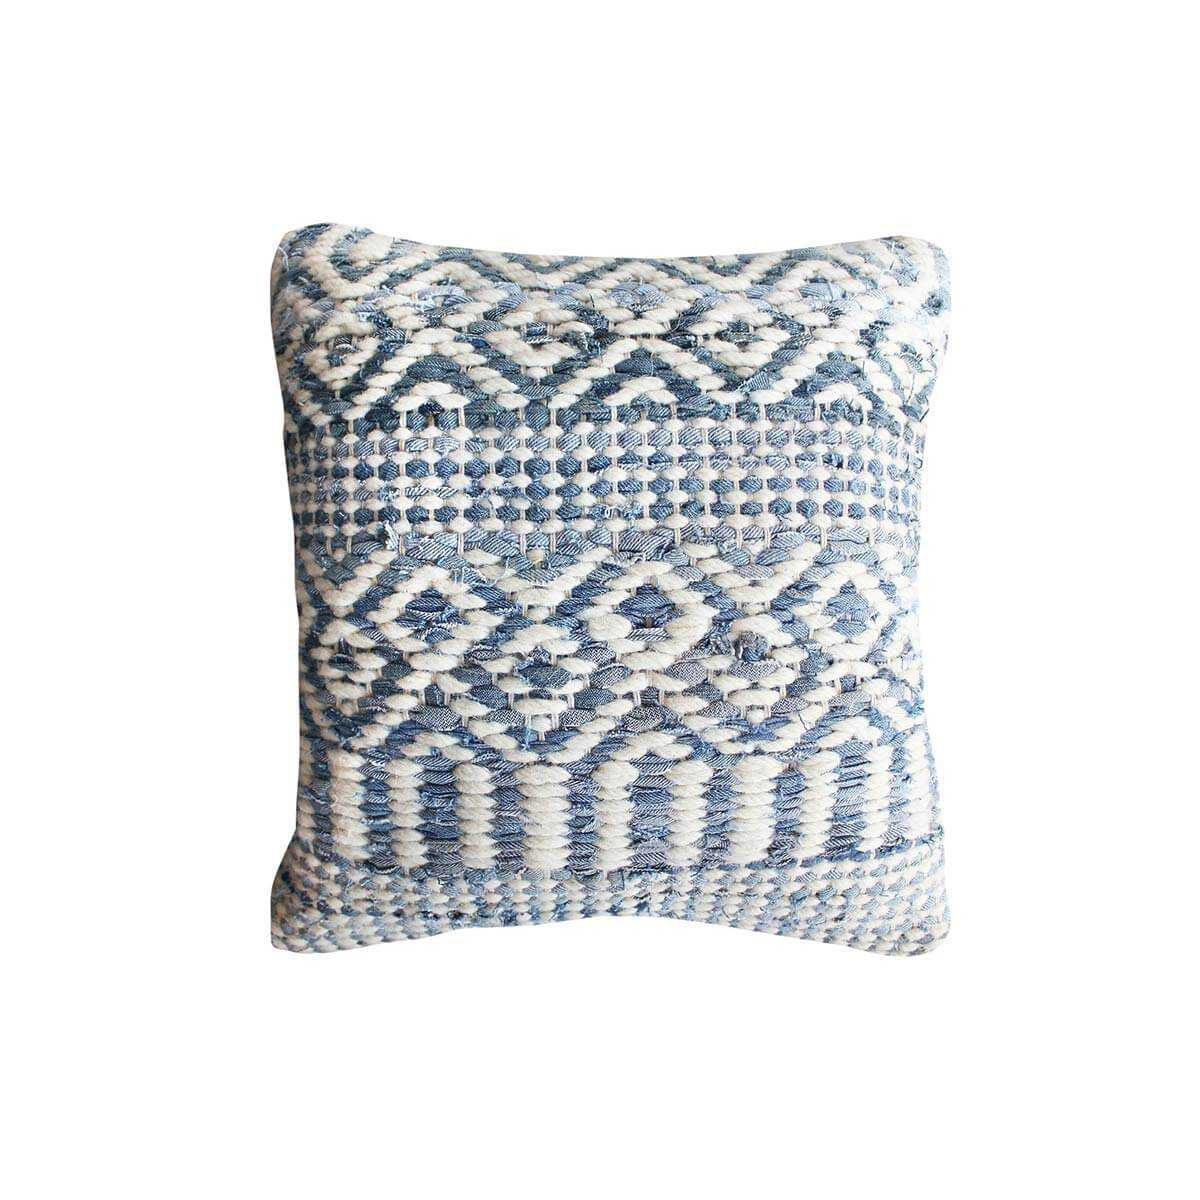 sarah-wool-denim-pillow-in-blue